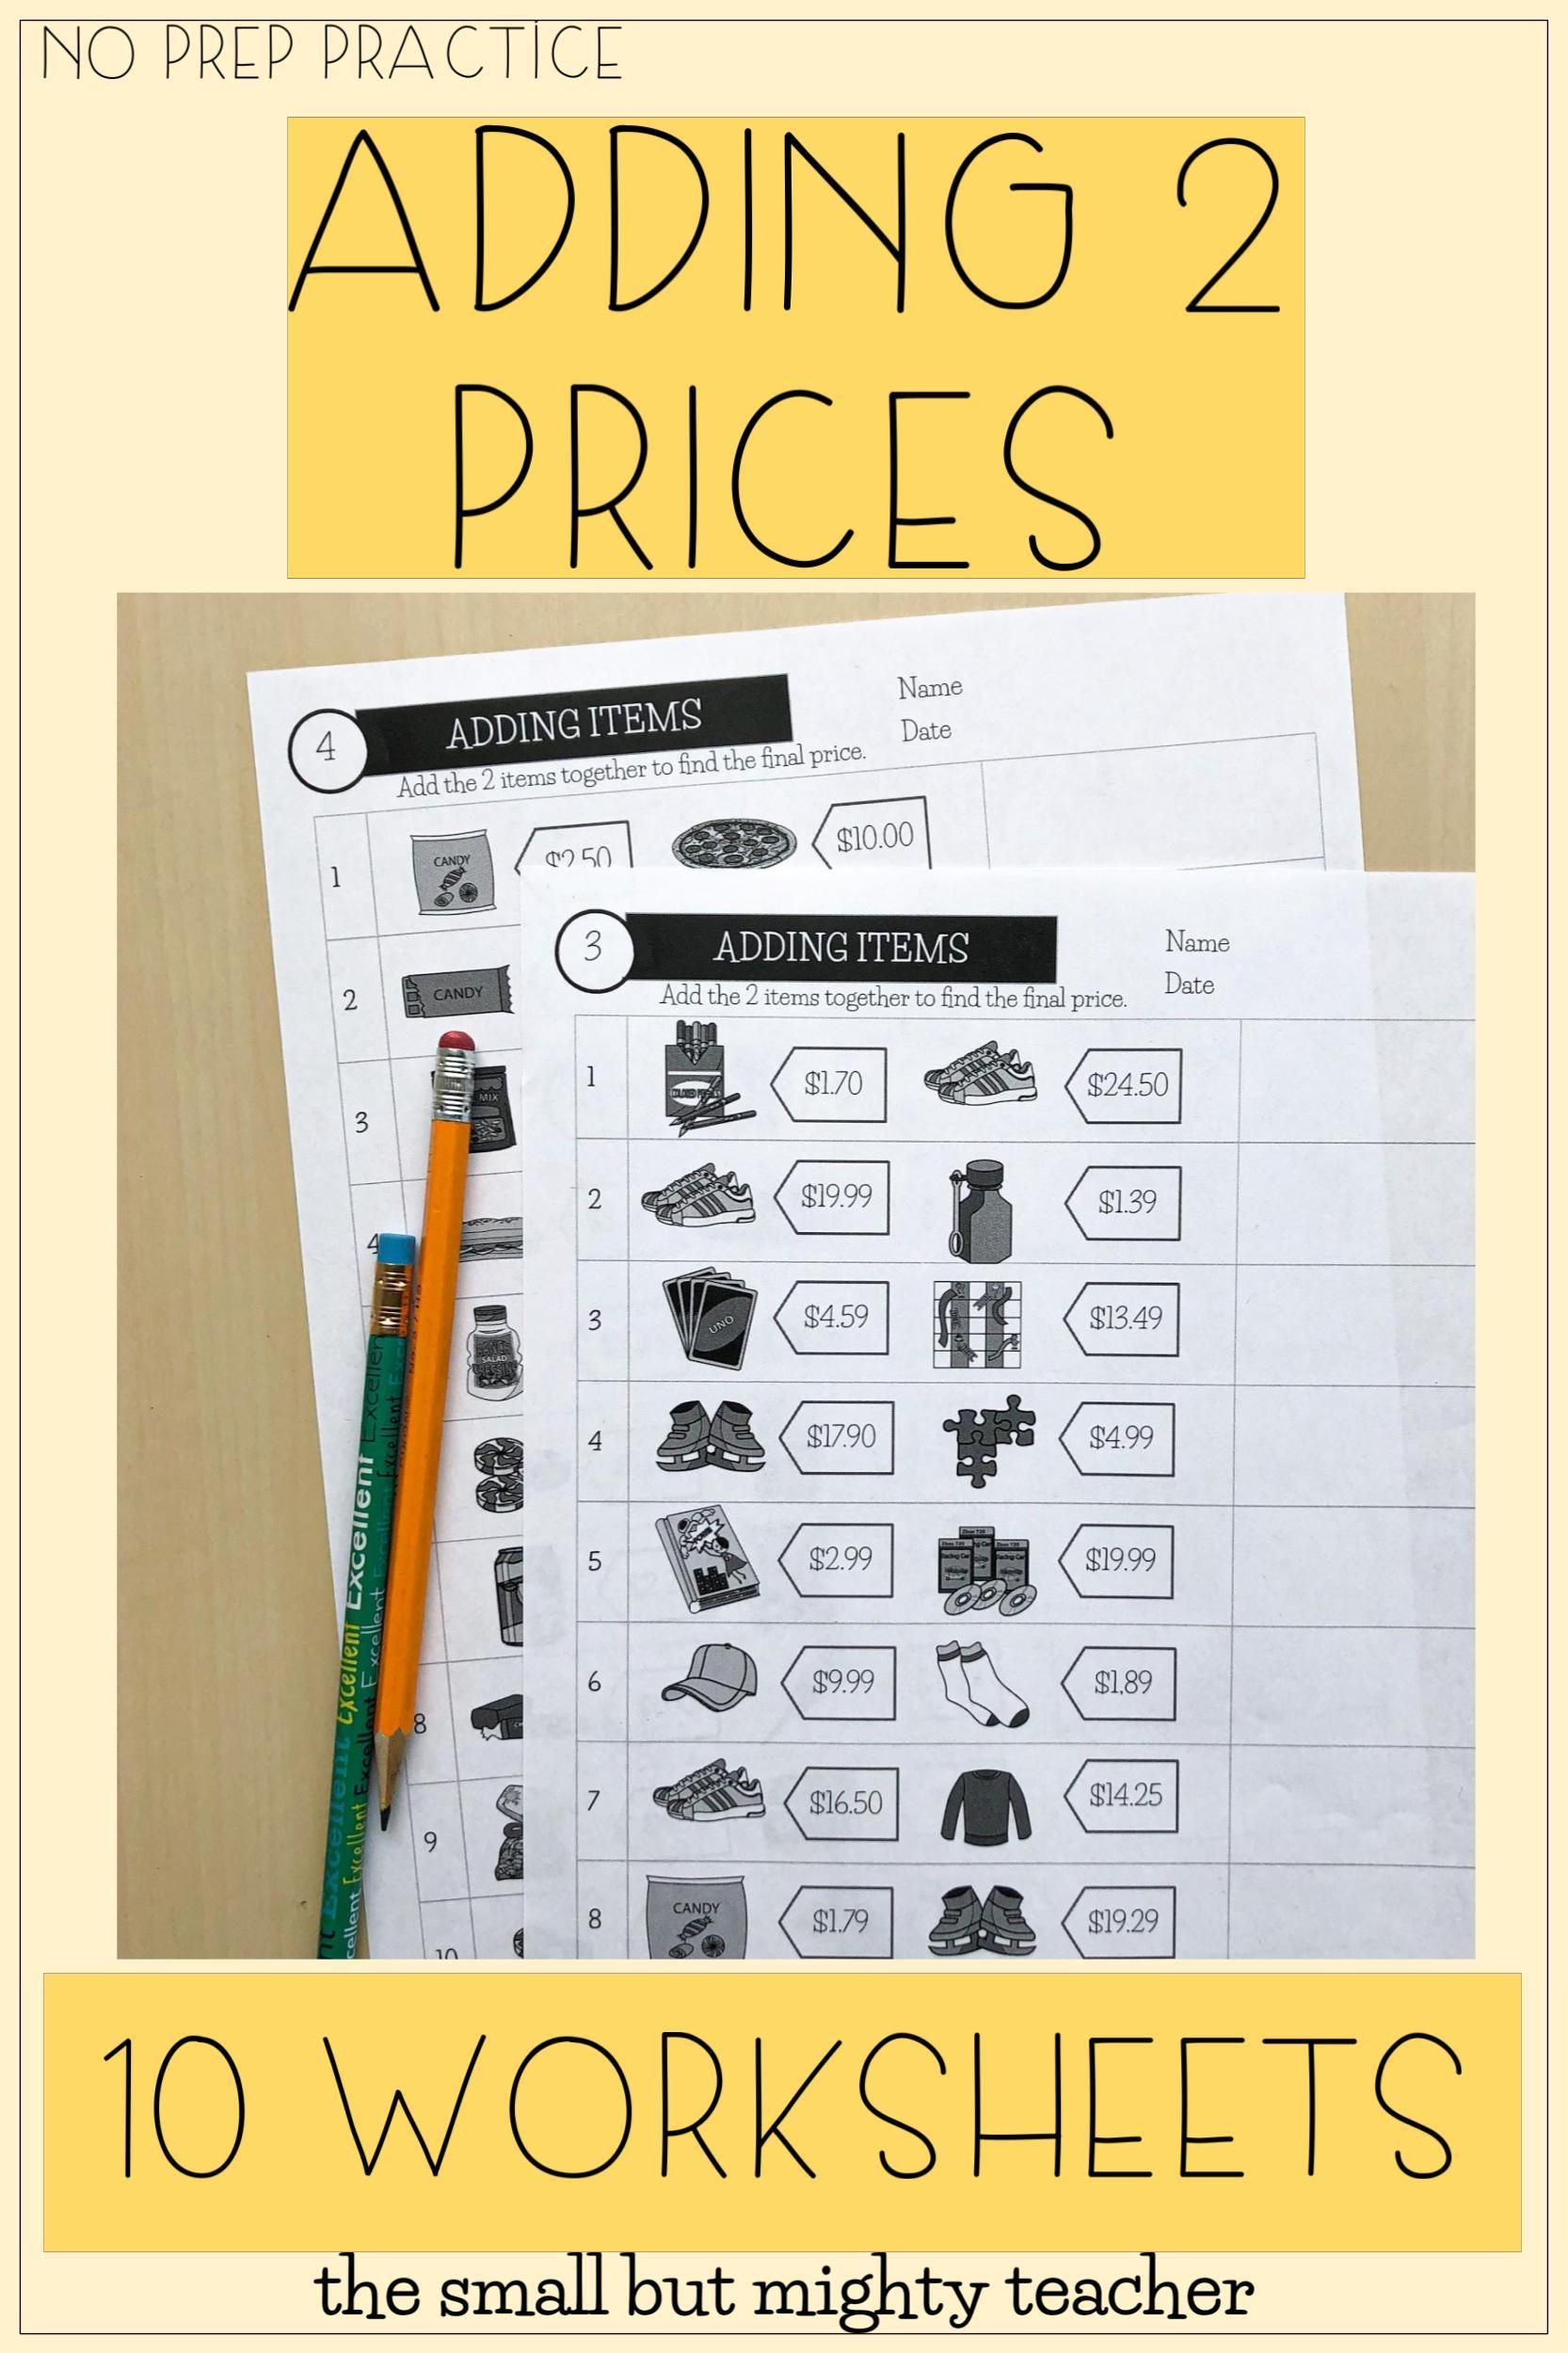 Adding 2 Items Worksheets